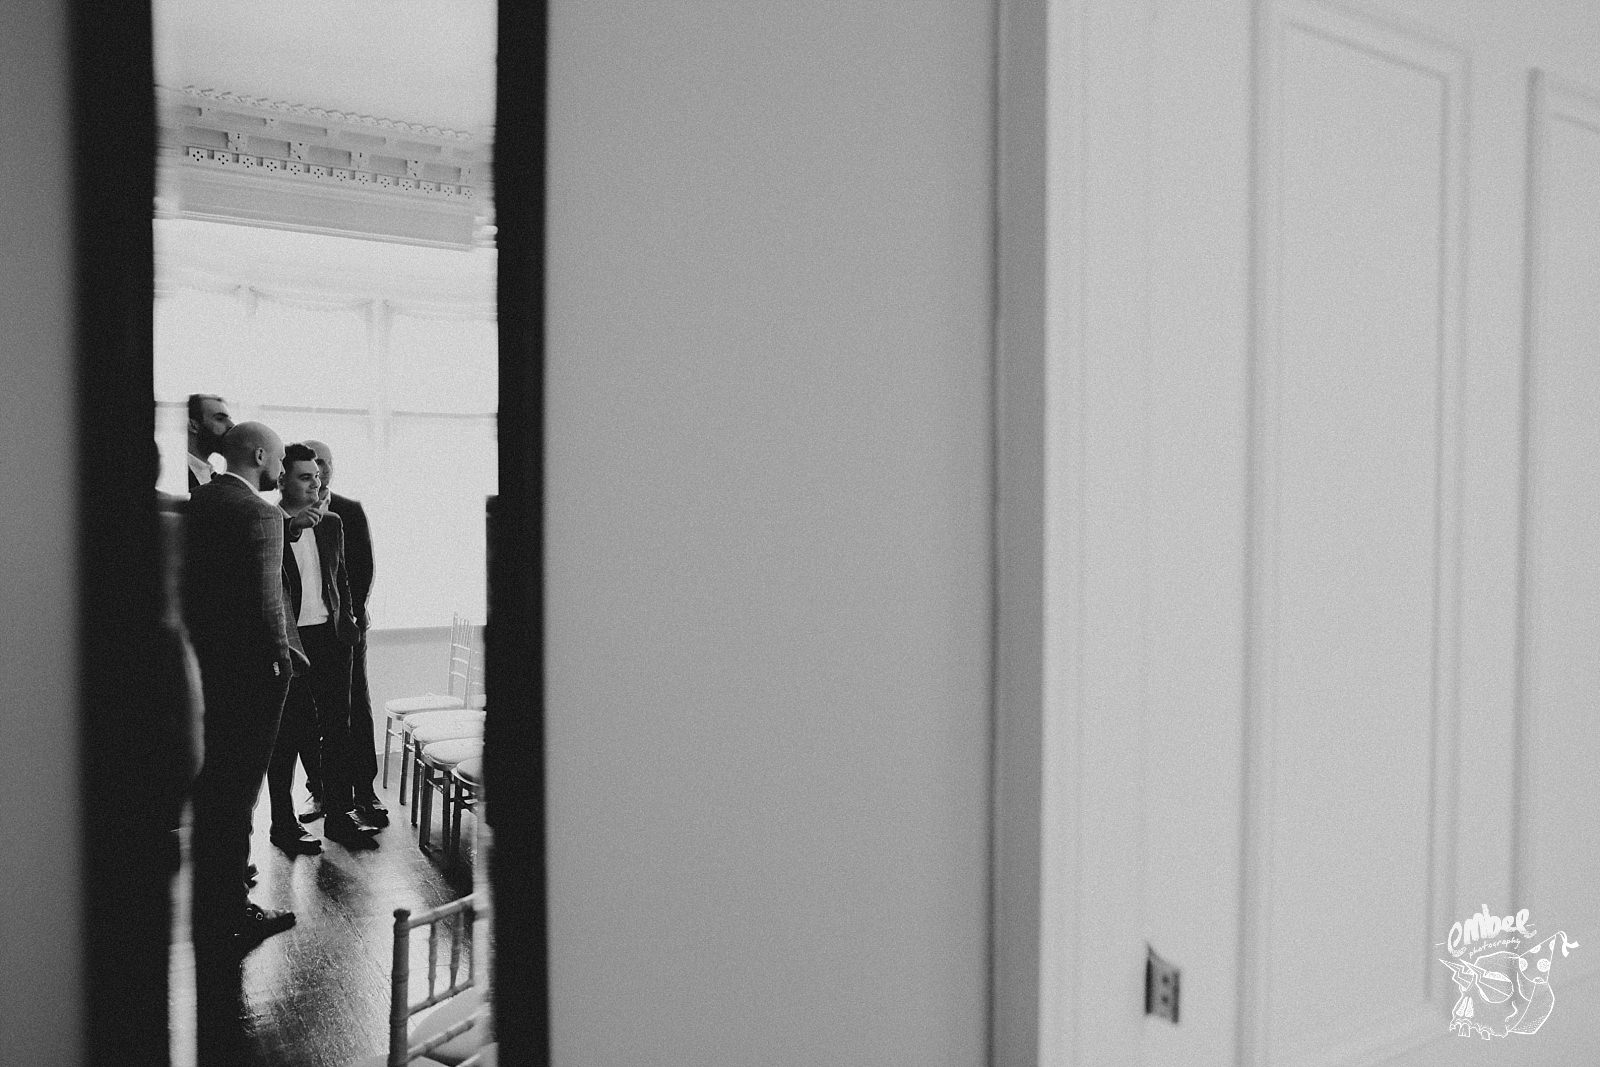 looking at the groomsman through an open door